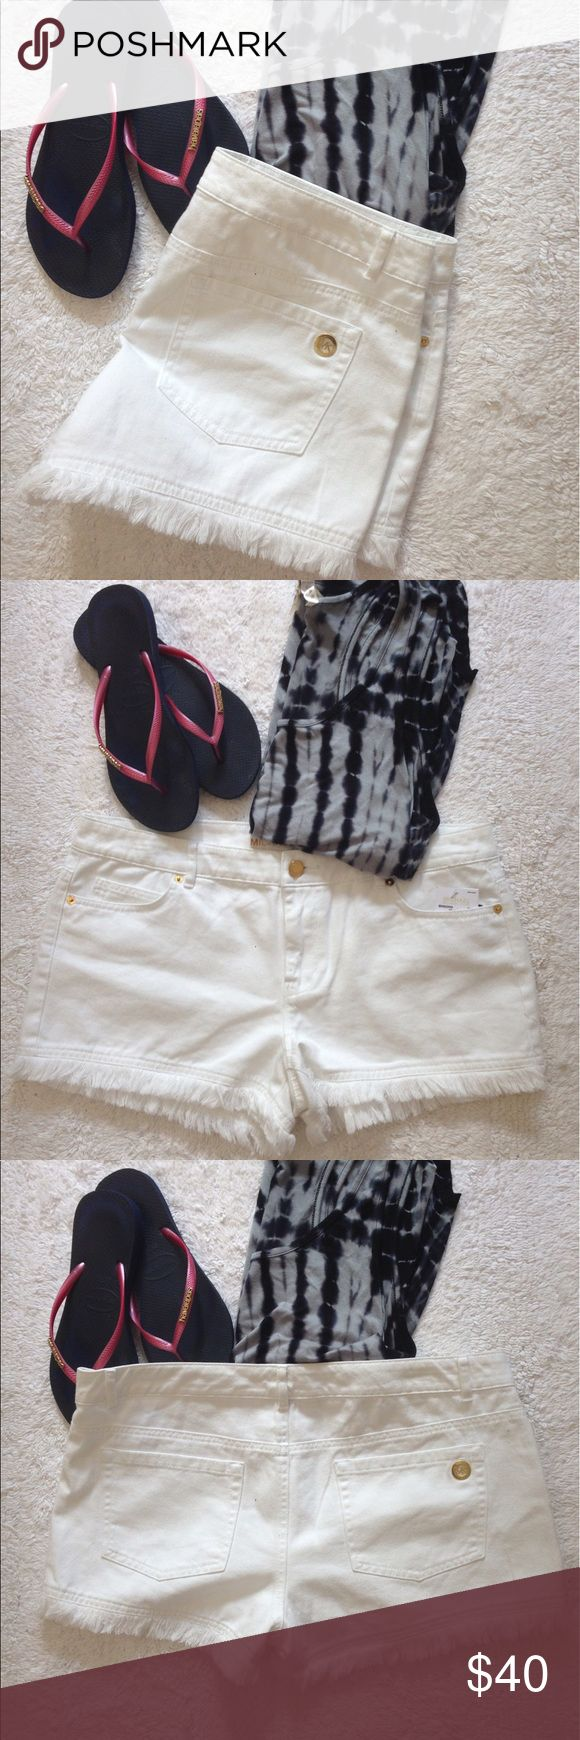 """Michael Kors Frayed White Denim Shorts Cute Michael Kors frayed, white denim shorts. Size 10. Length is 10"""" inches. 100% cotton. Machine wash inside out, tumble dry low. Nontrades or PayPal please. Michael Kors Shorts Jean Shorts"""